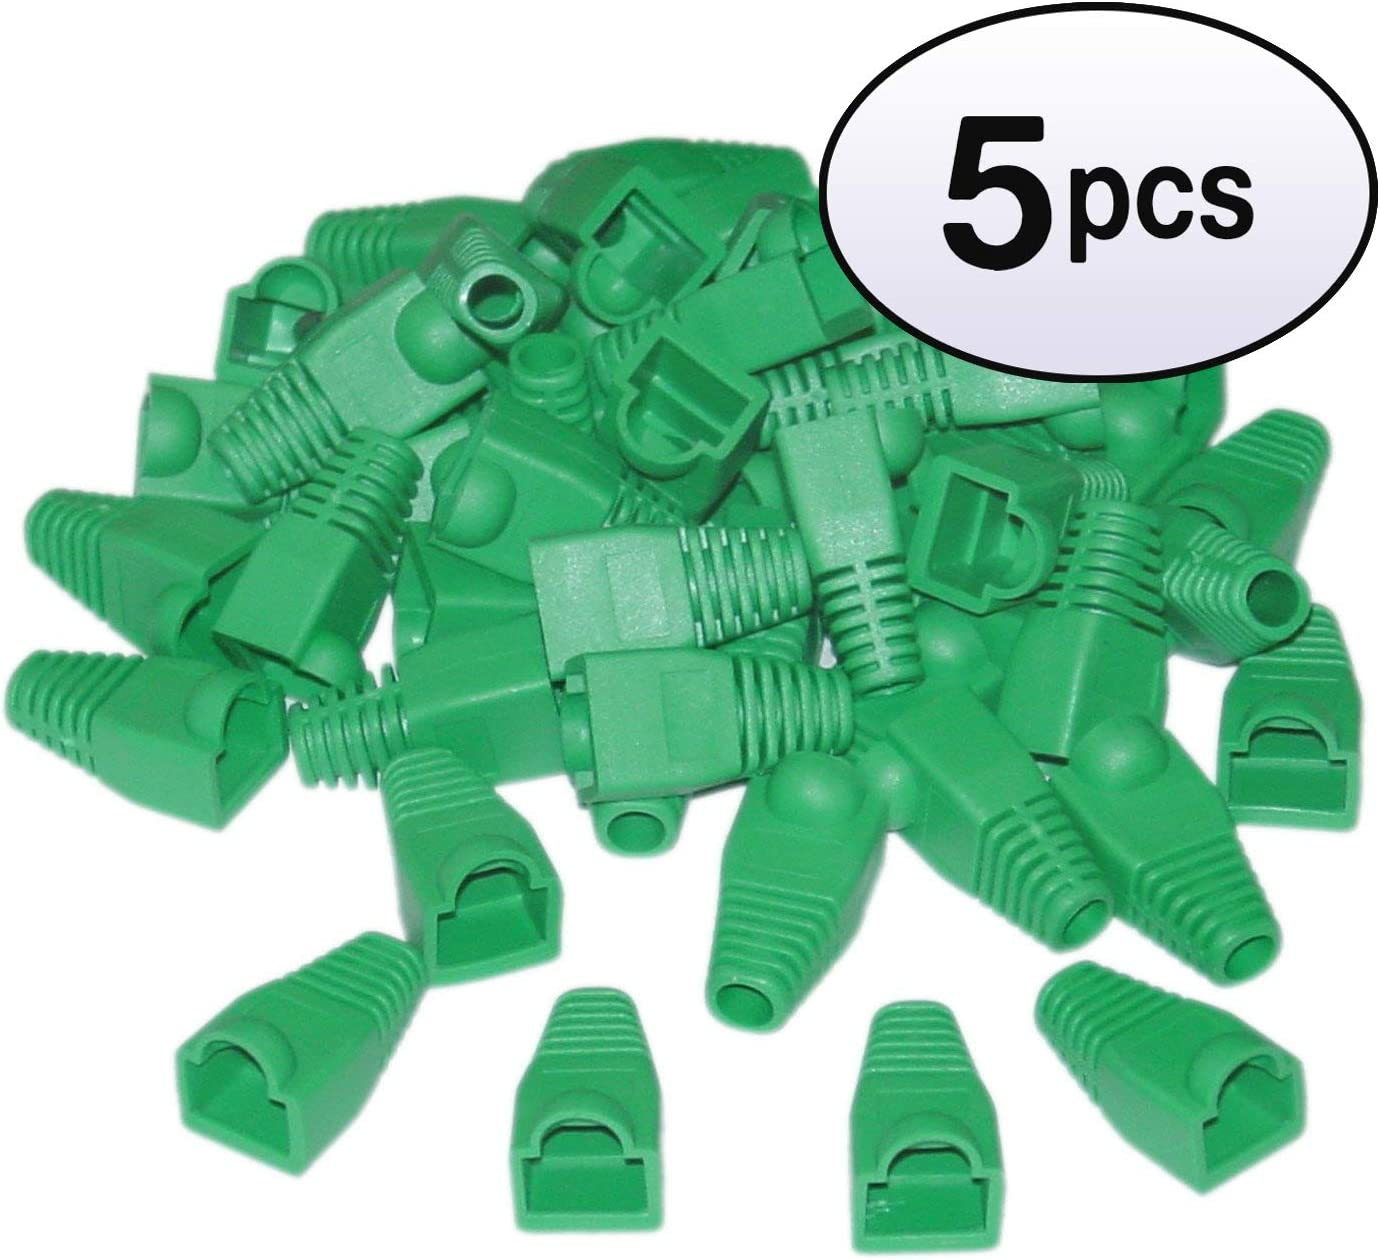 GOWOS 5 Pack Green 50 Pieces Per Bag RJ45 Strain Relief Boots